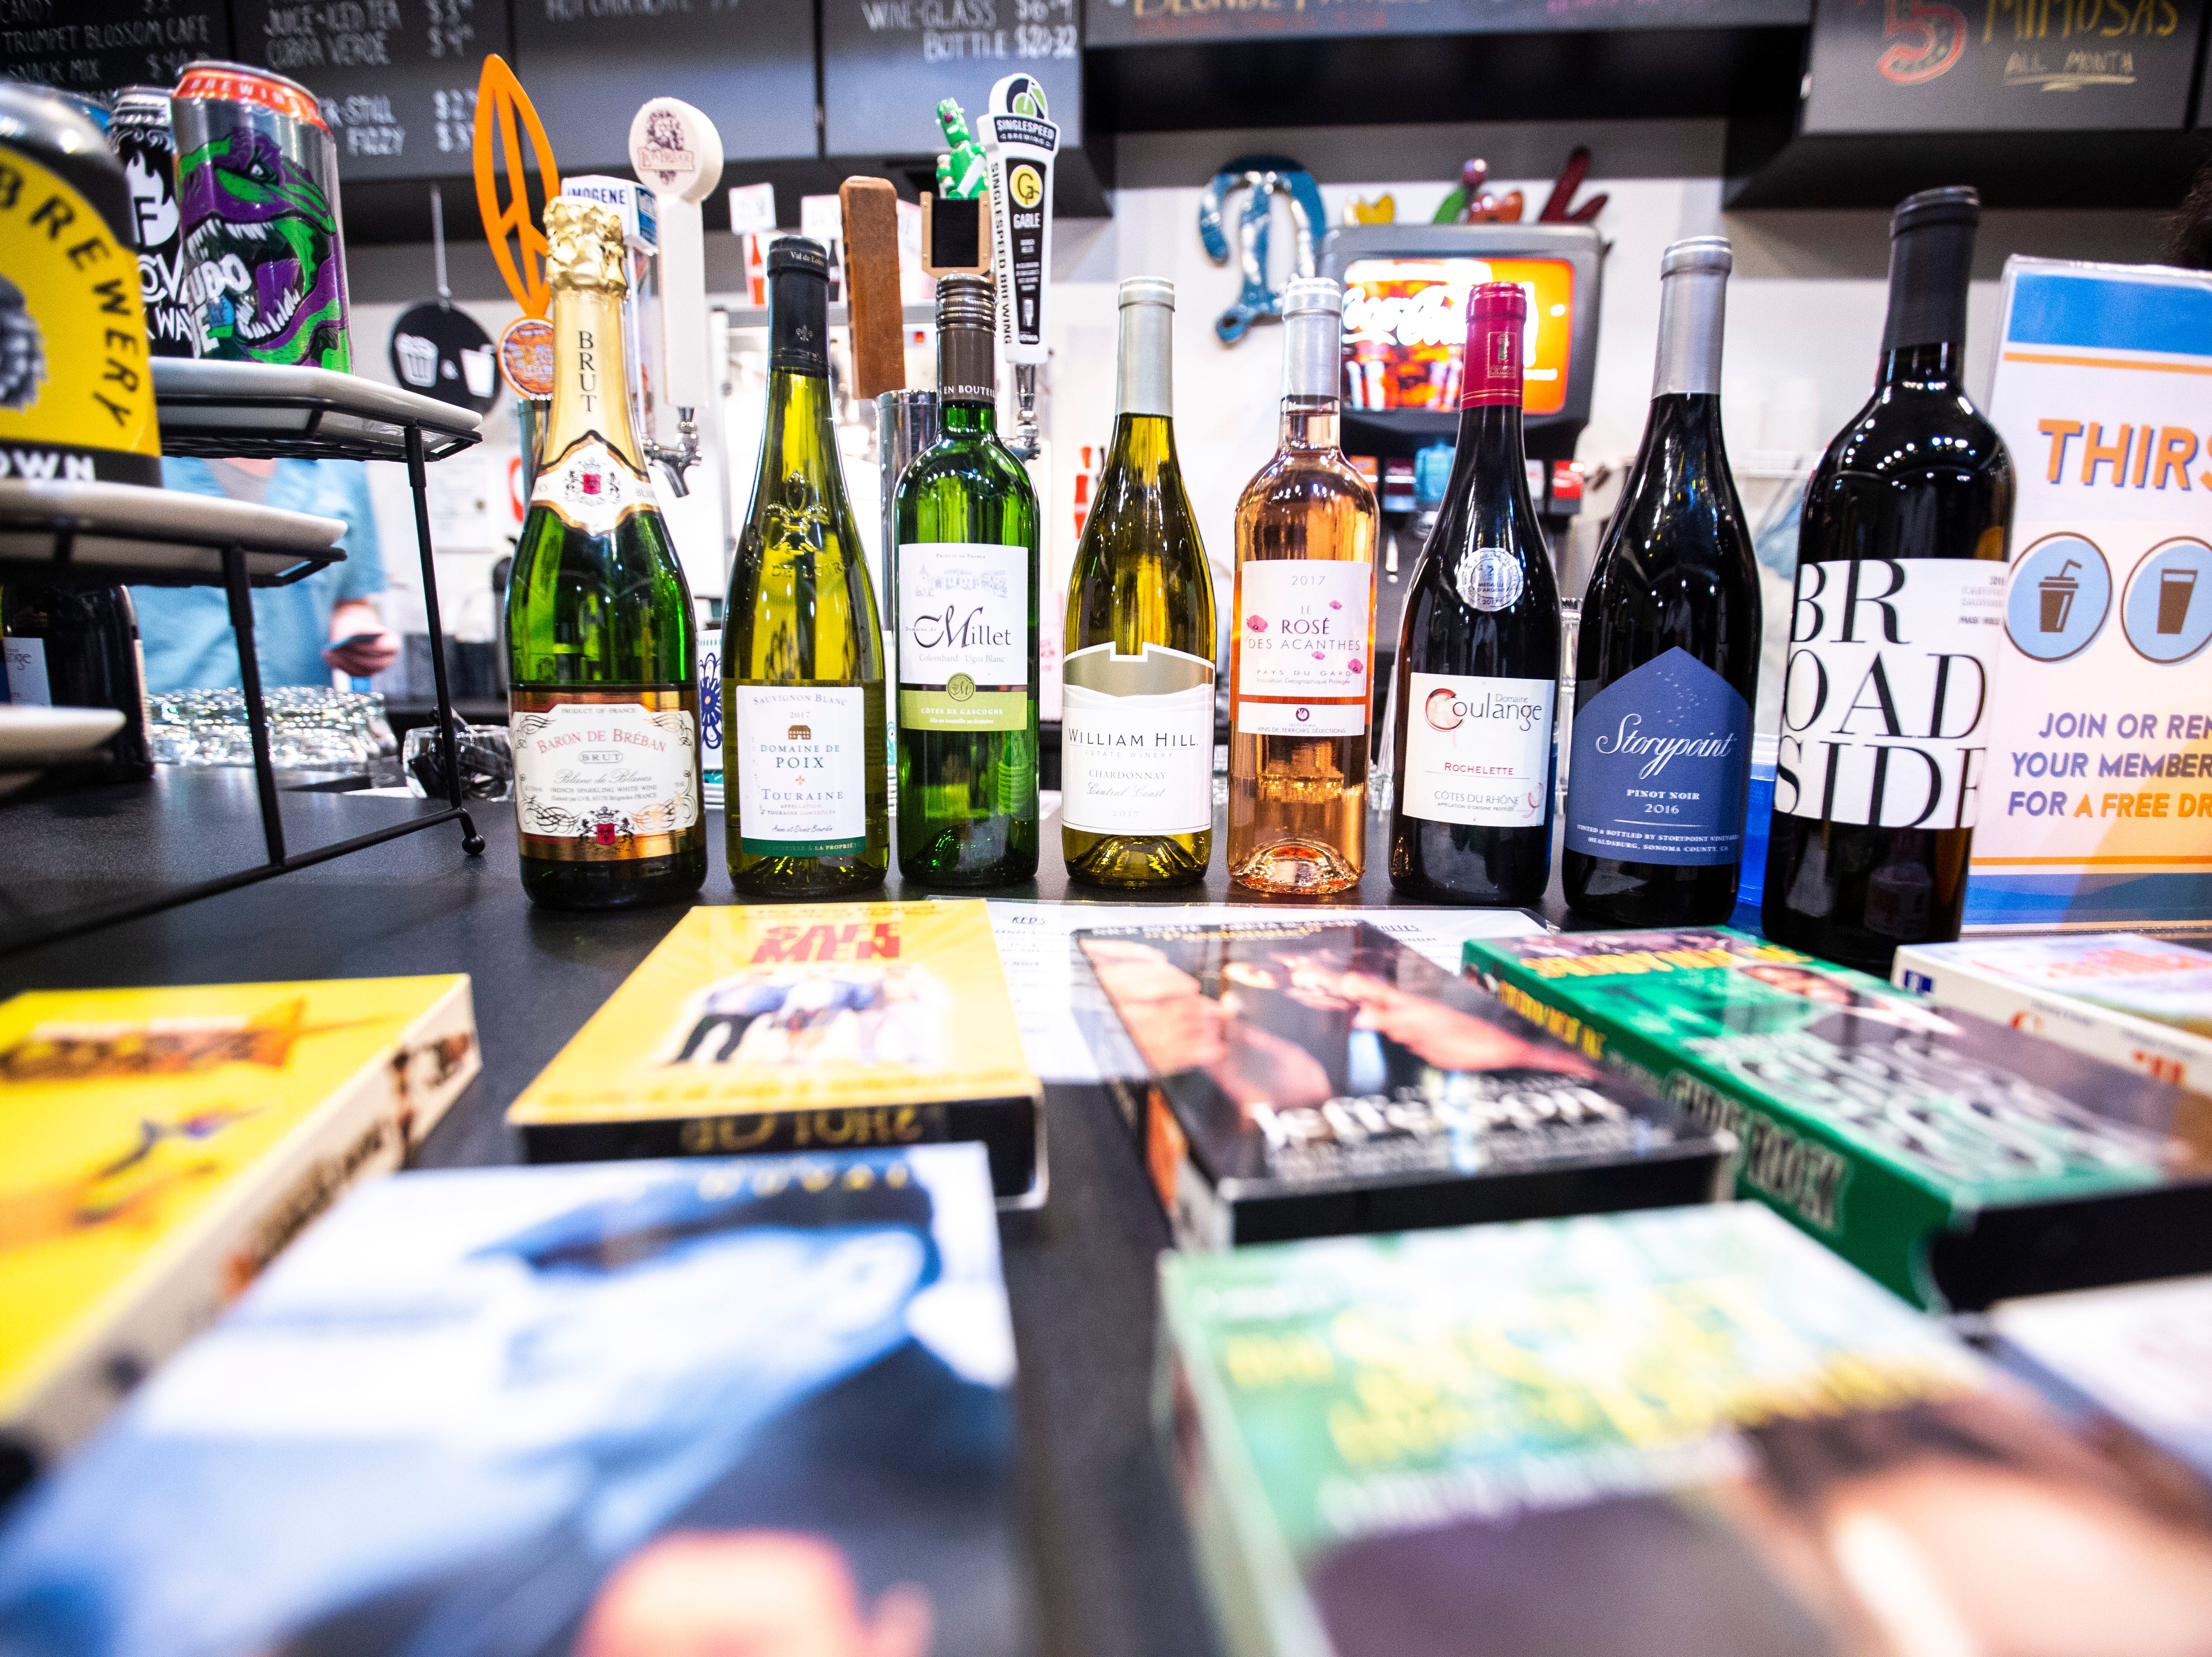 """Bottles of wine sit on a counter behind a variety of VHS tapes during a """"Late Shift at the Grindhouse"""" movie screening, Wednesday, April 17, 2019, at FilmScene in Iowa City, Iowa."""